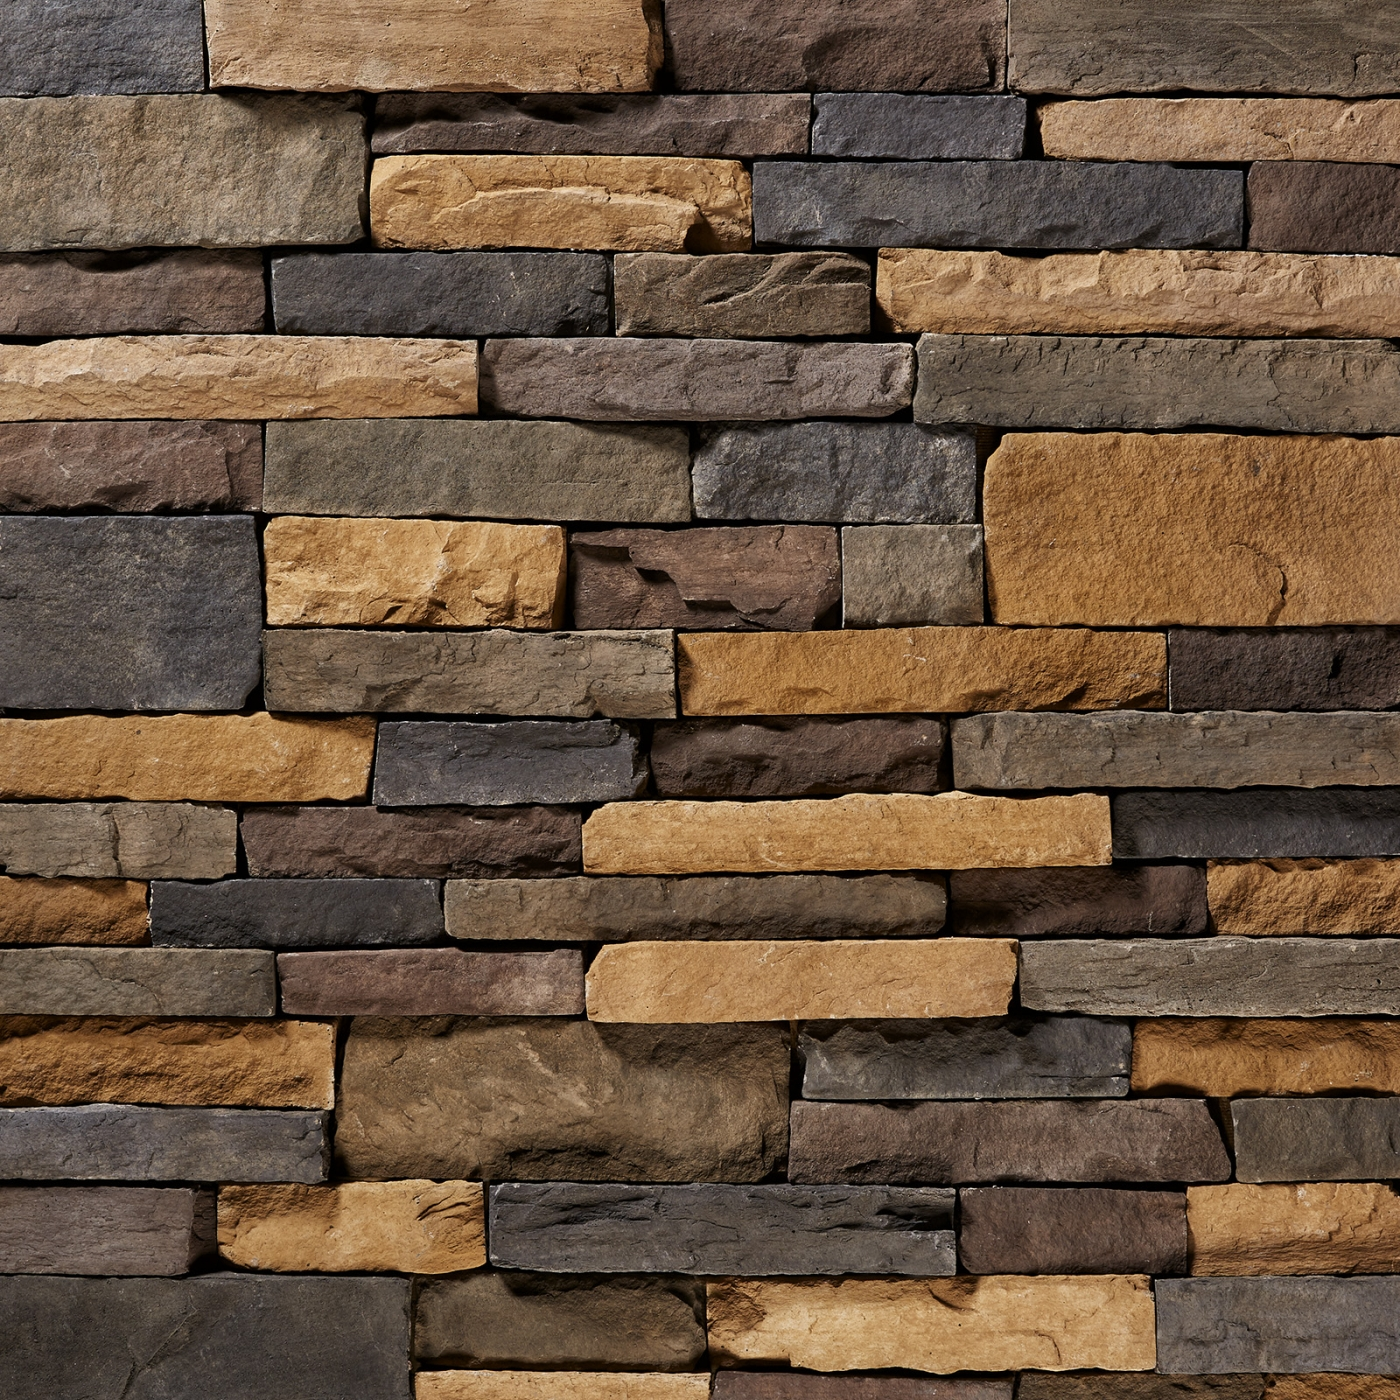 Aspen Black Blend Mountain Ledgestone Stone Veneer from Environmental StoneWorks